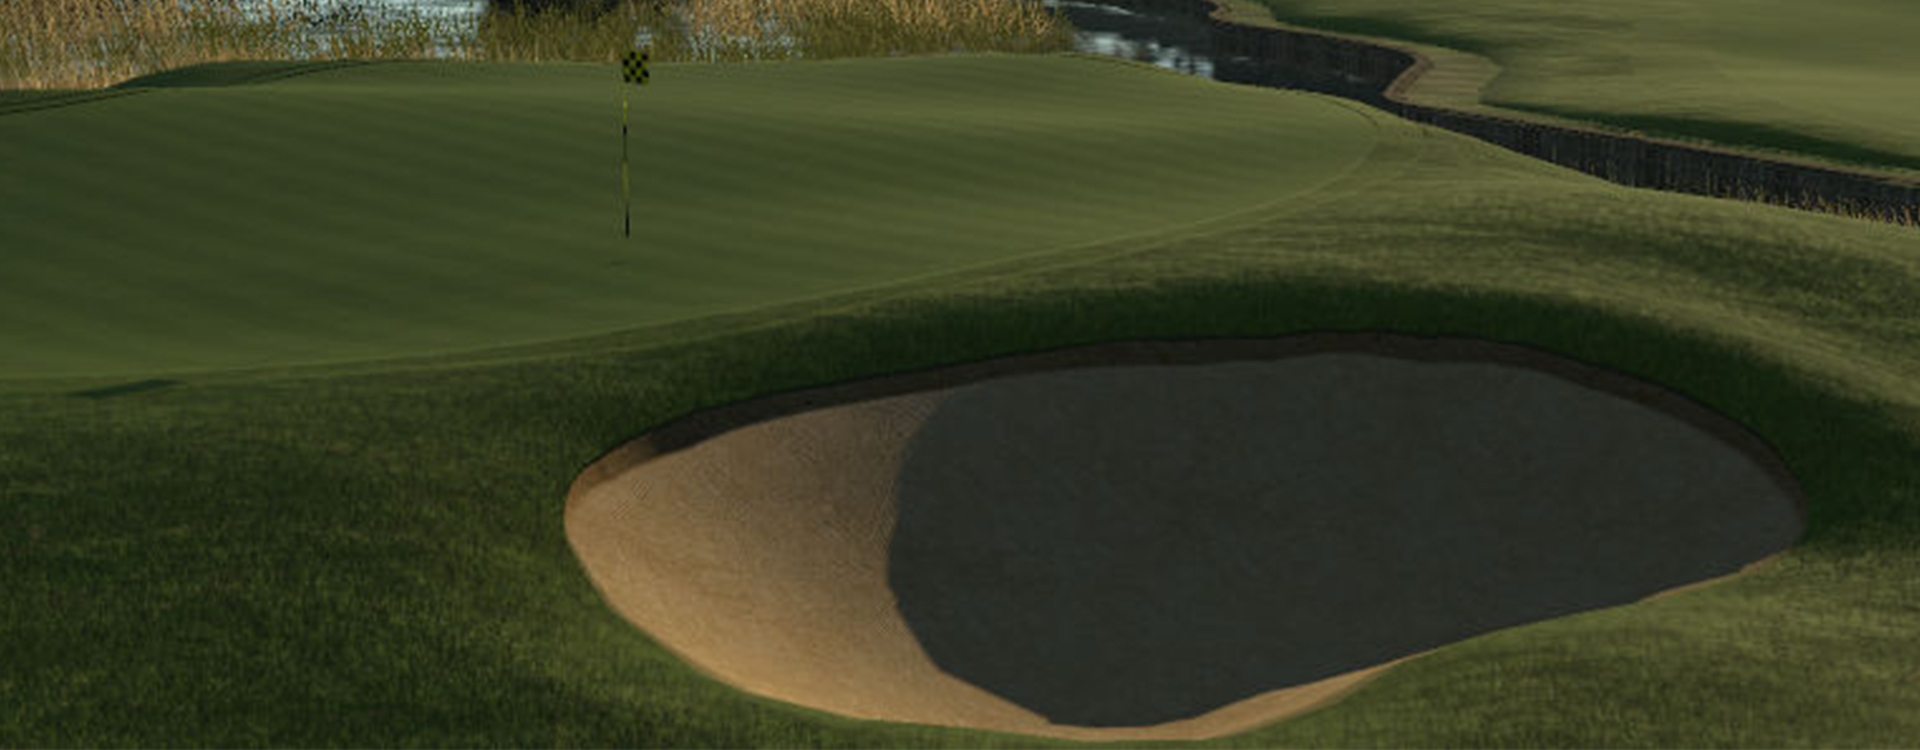 Golf-Simulator